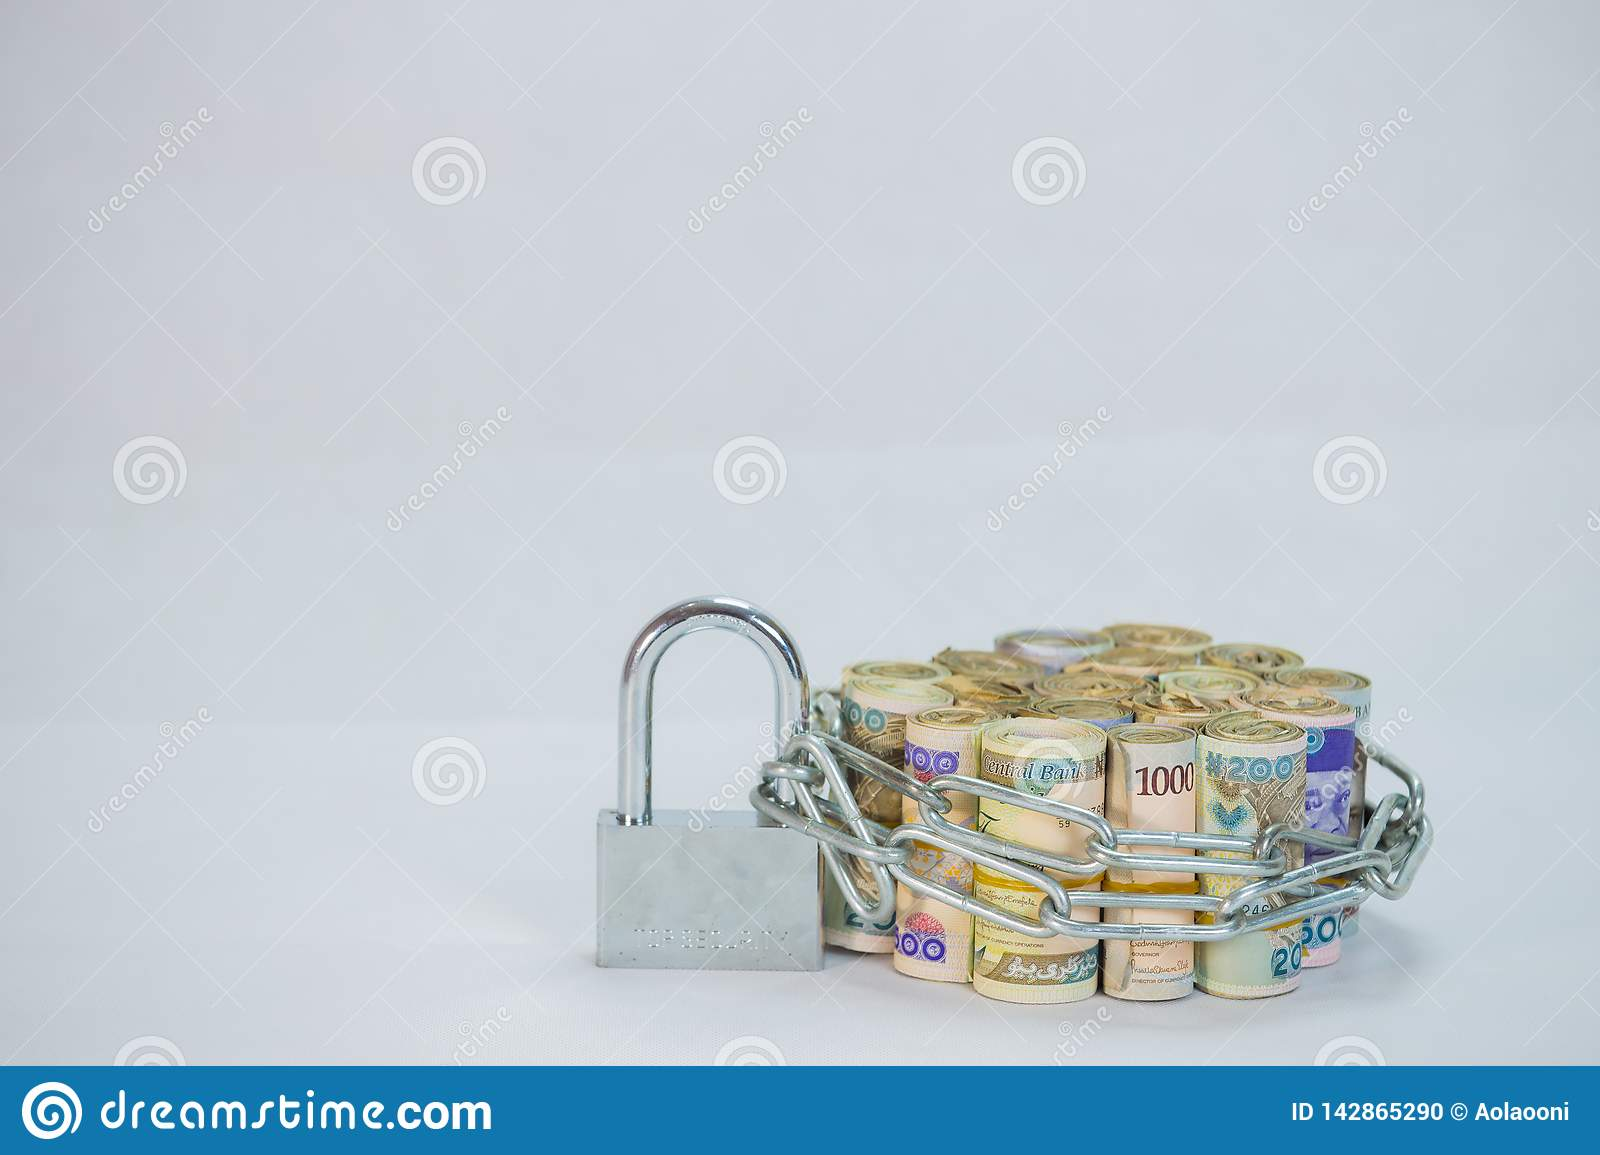 Bundles of naira cash chained and padlock concept of Esecurity